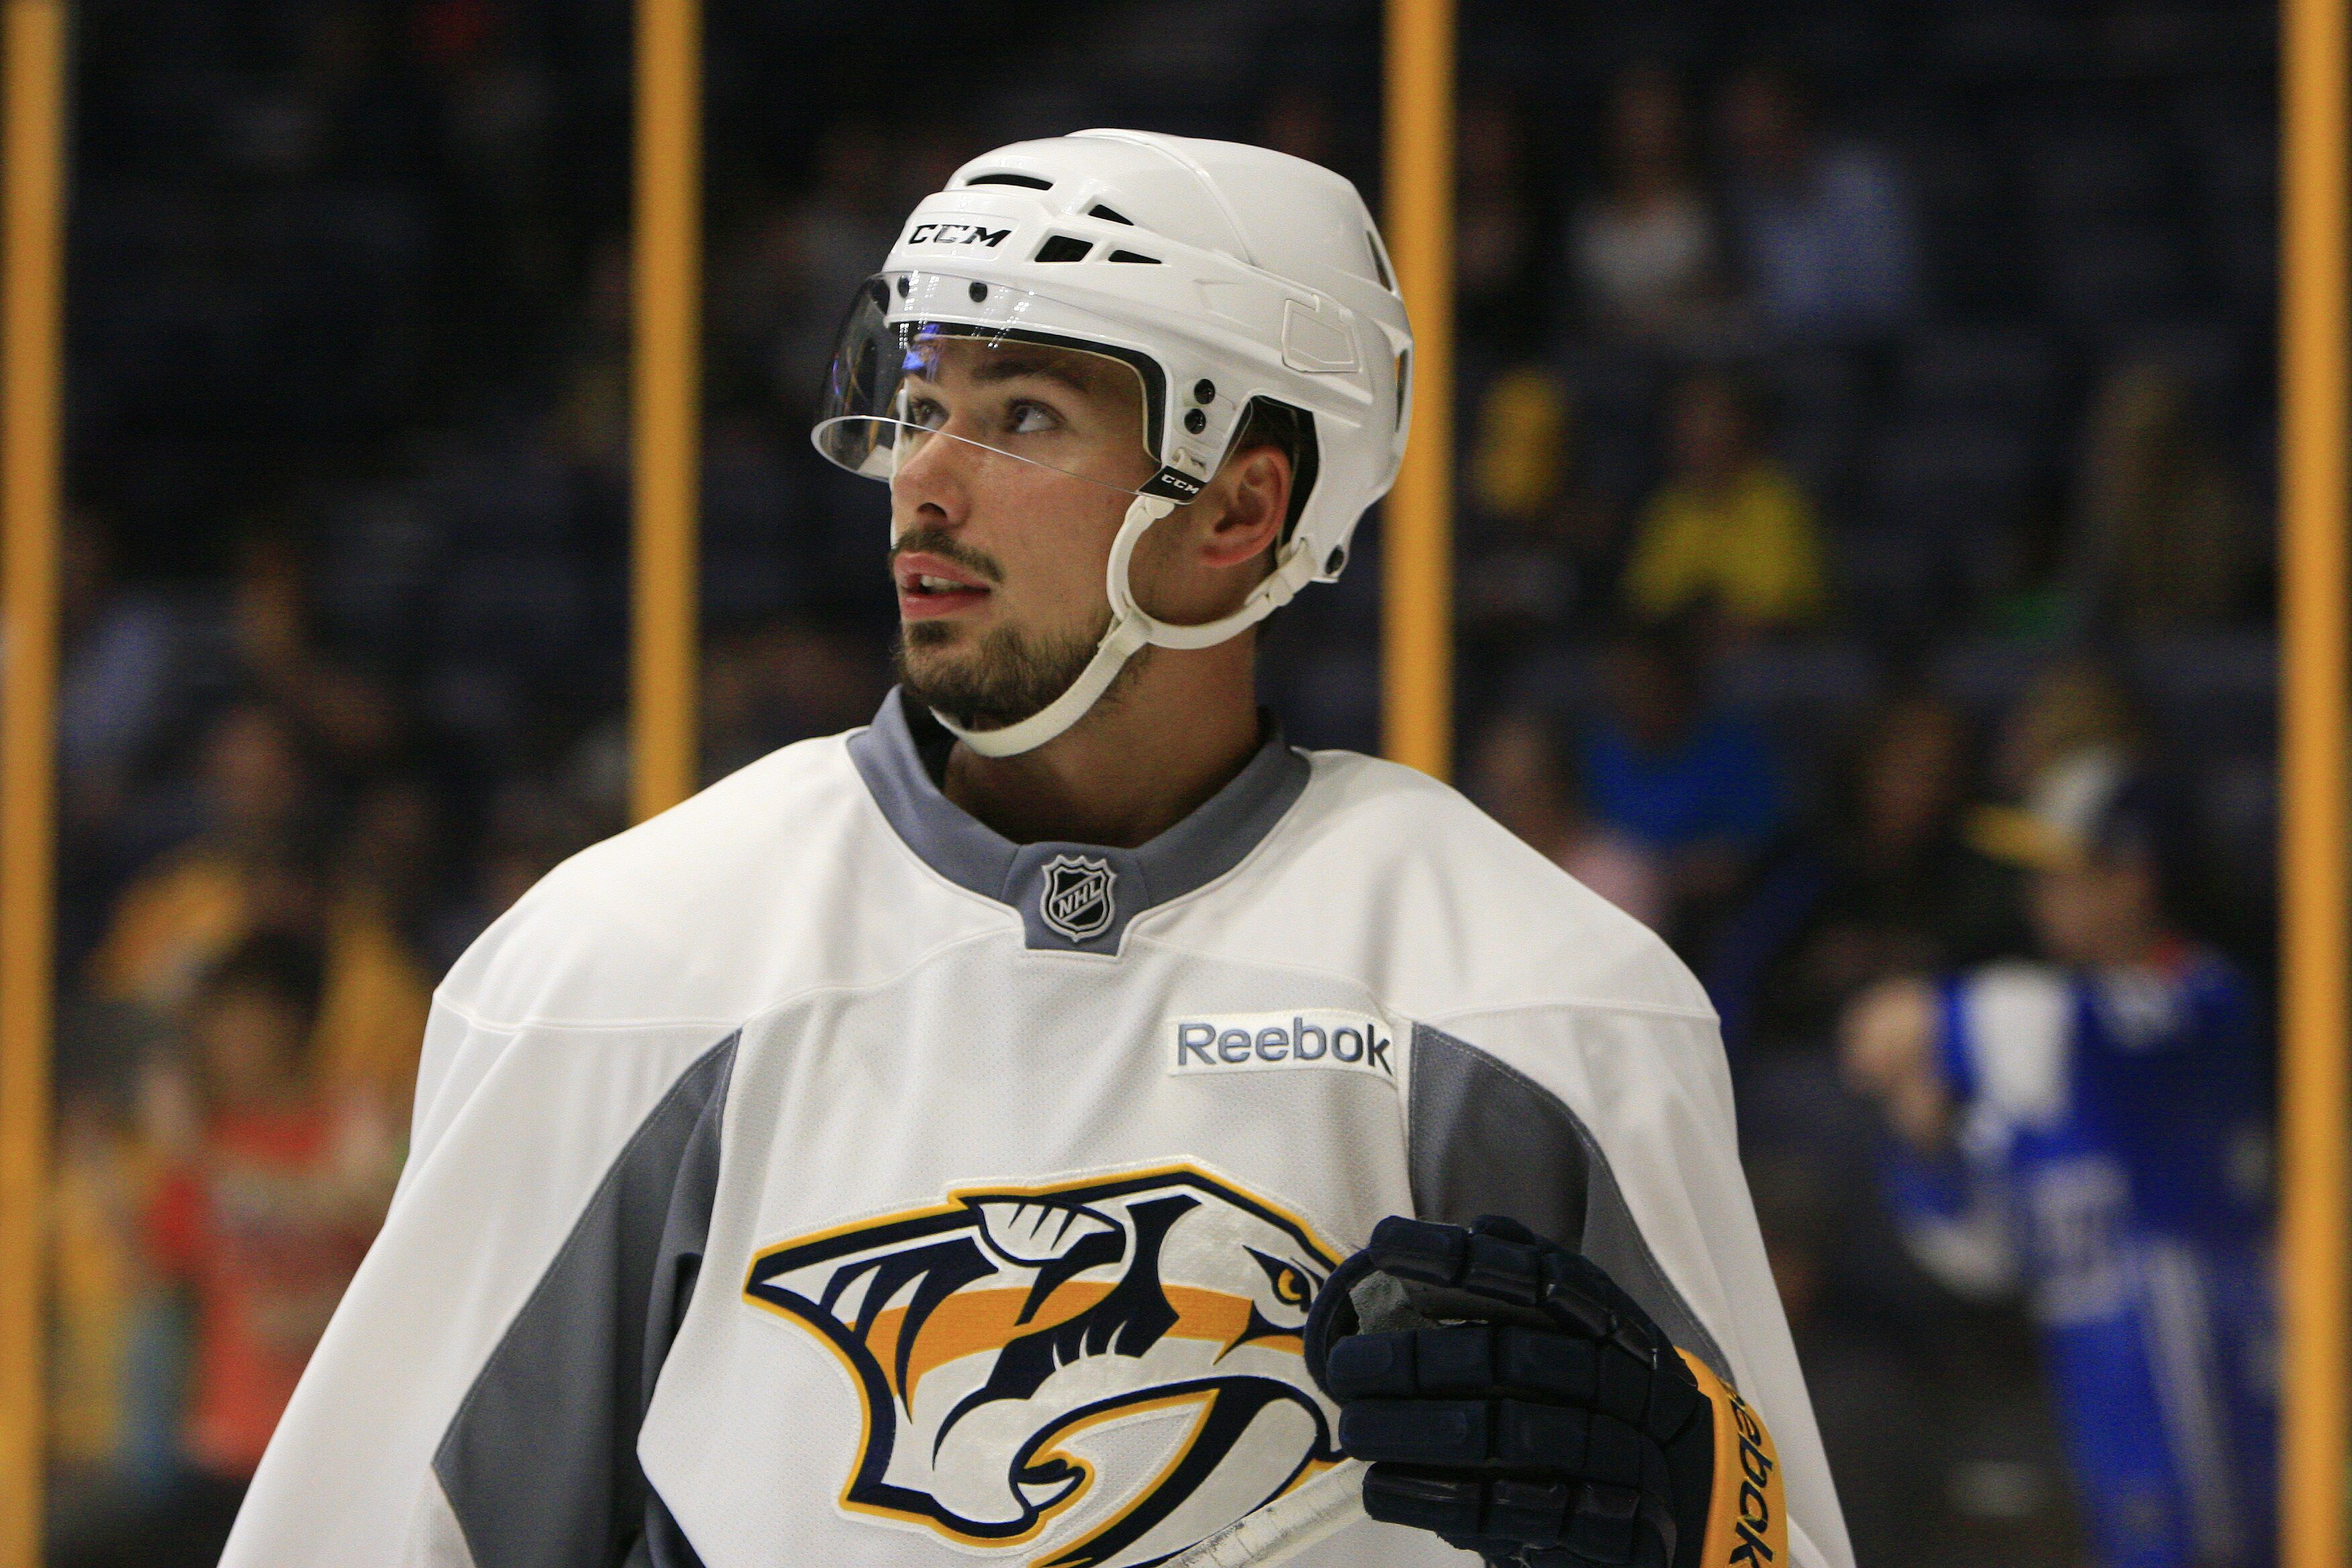 Nashville Predators  Prospects showed their abilities at Rookie Camp e62838ca6